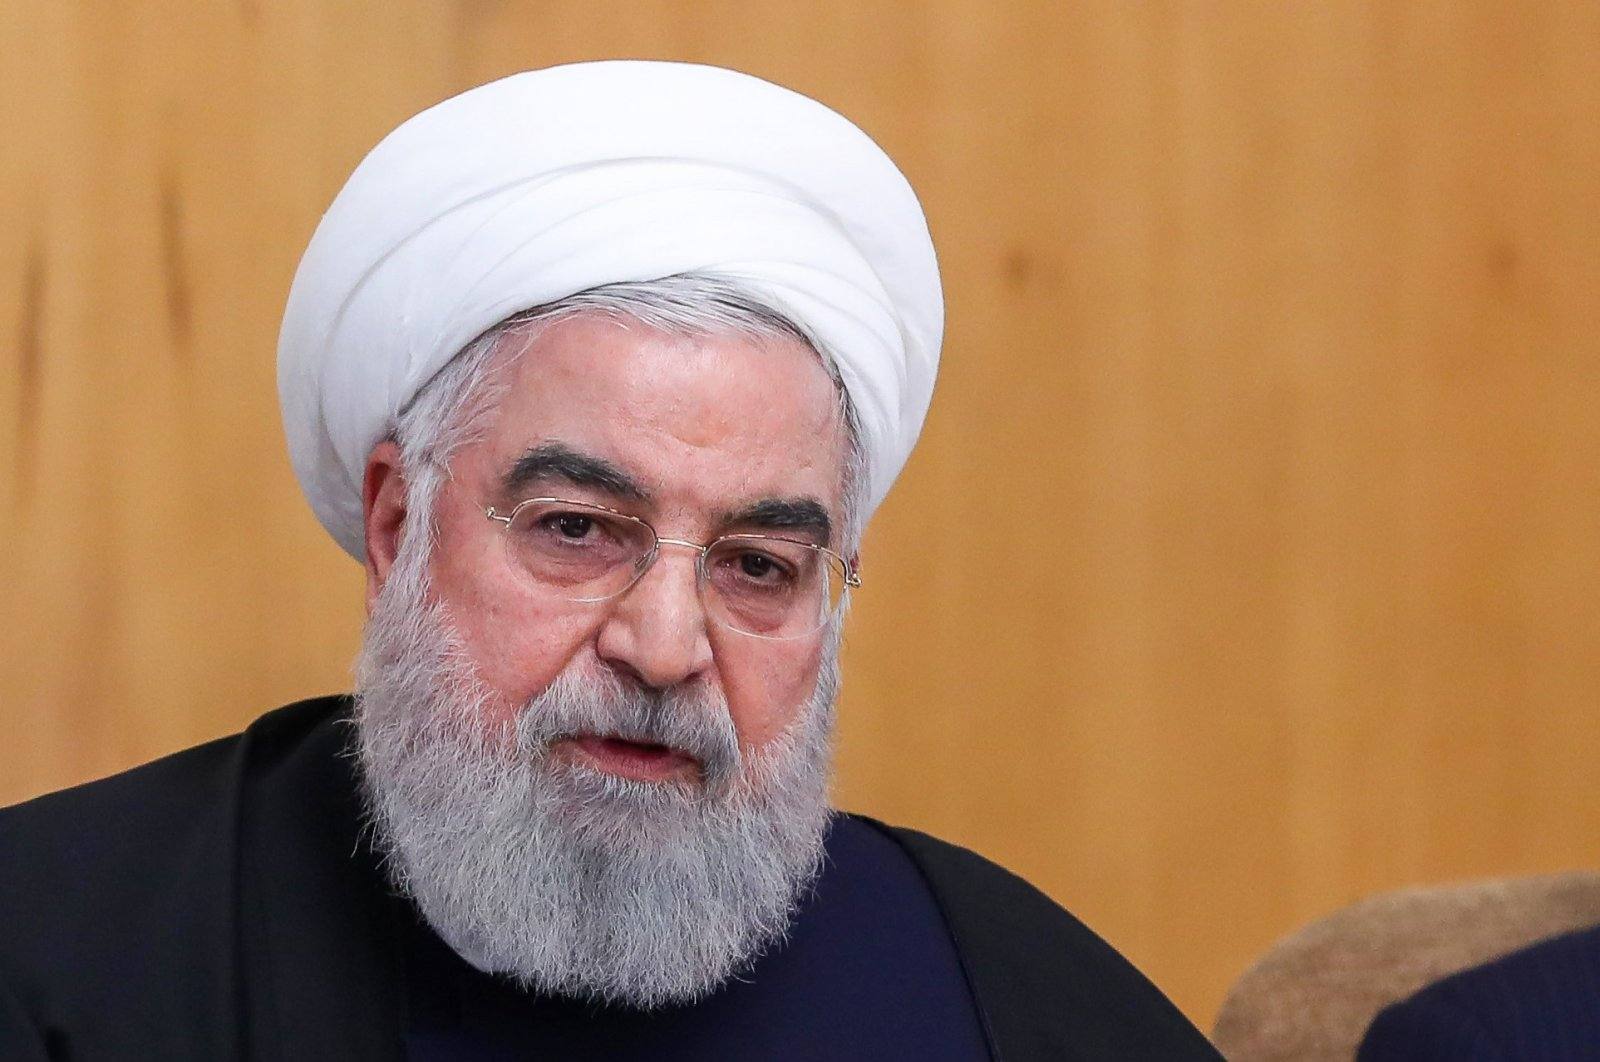 Iranian President Hassan Rouhani speaks during a cabinet meeting in the capital Tehran, Jan. 8, 2020. (AFP Photo/ HO / Iranian Presidency)